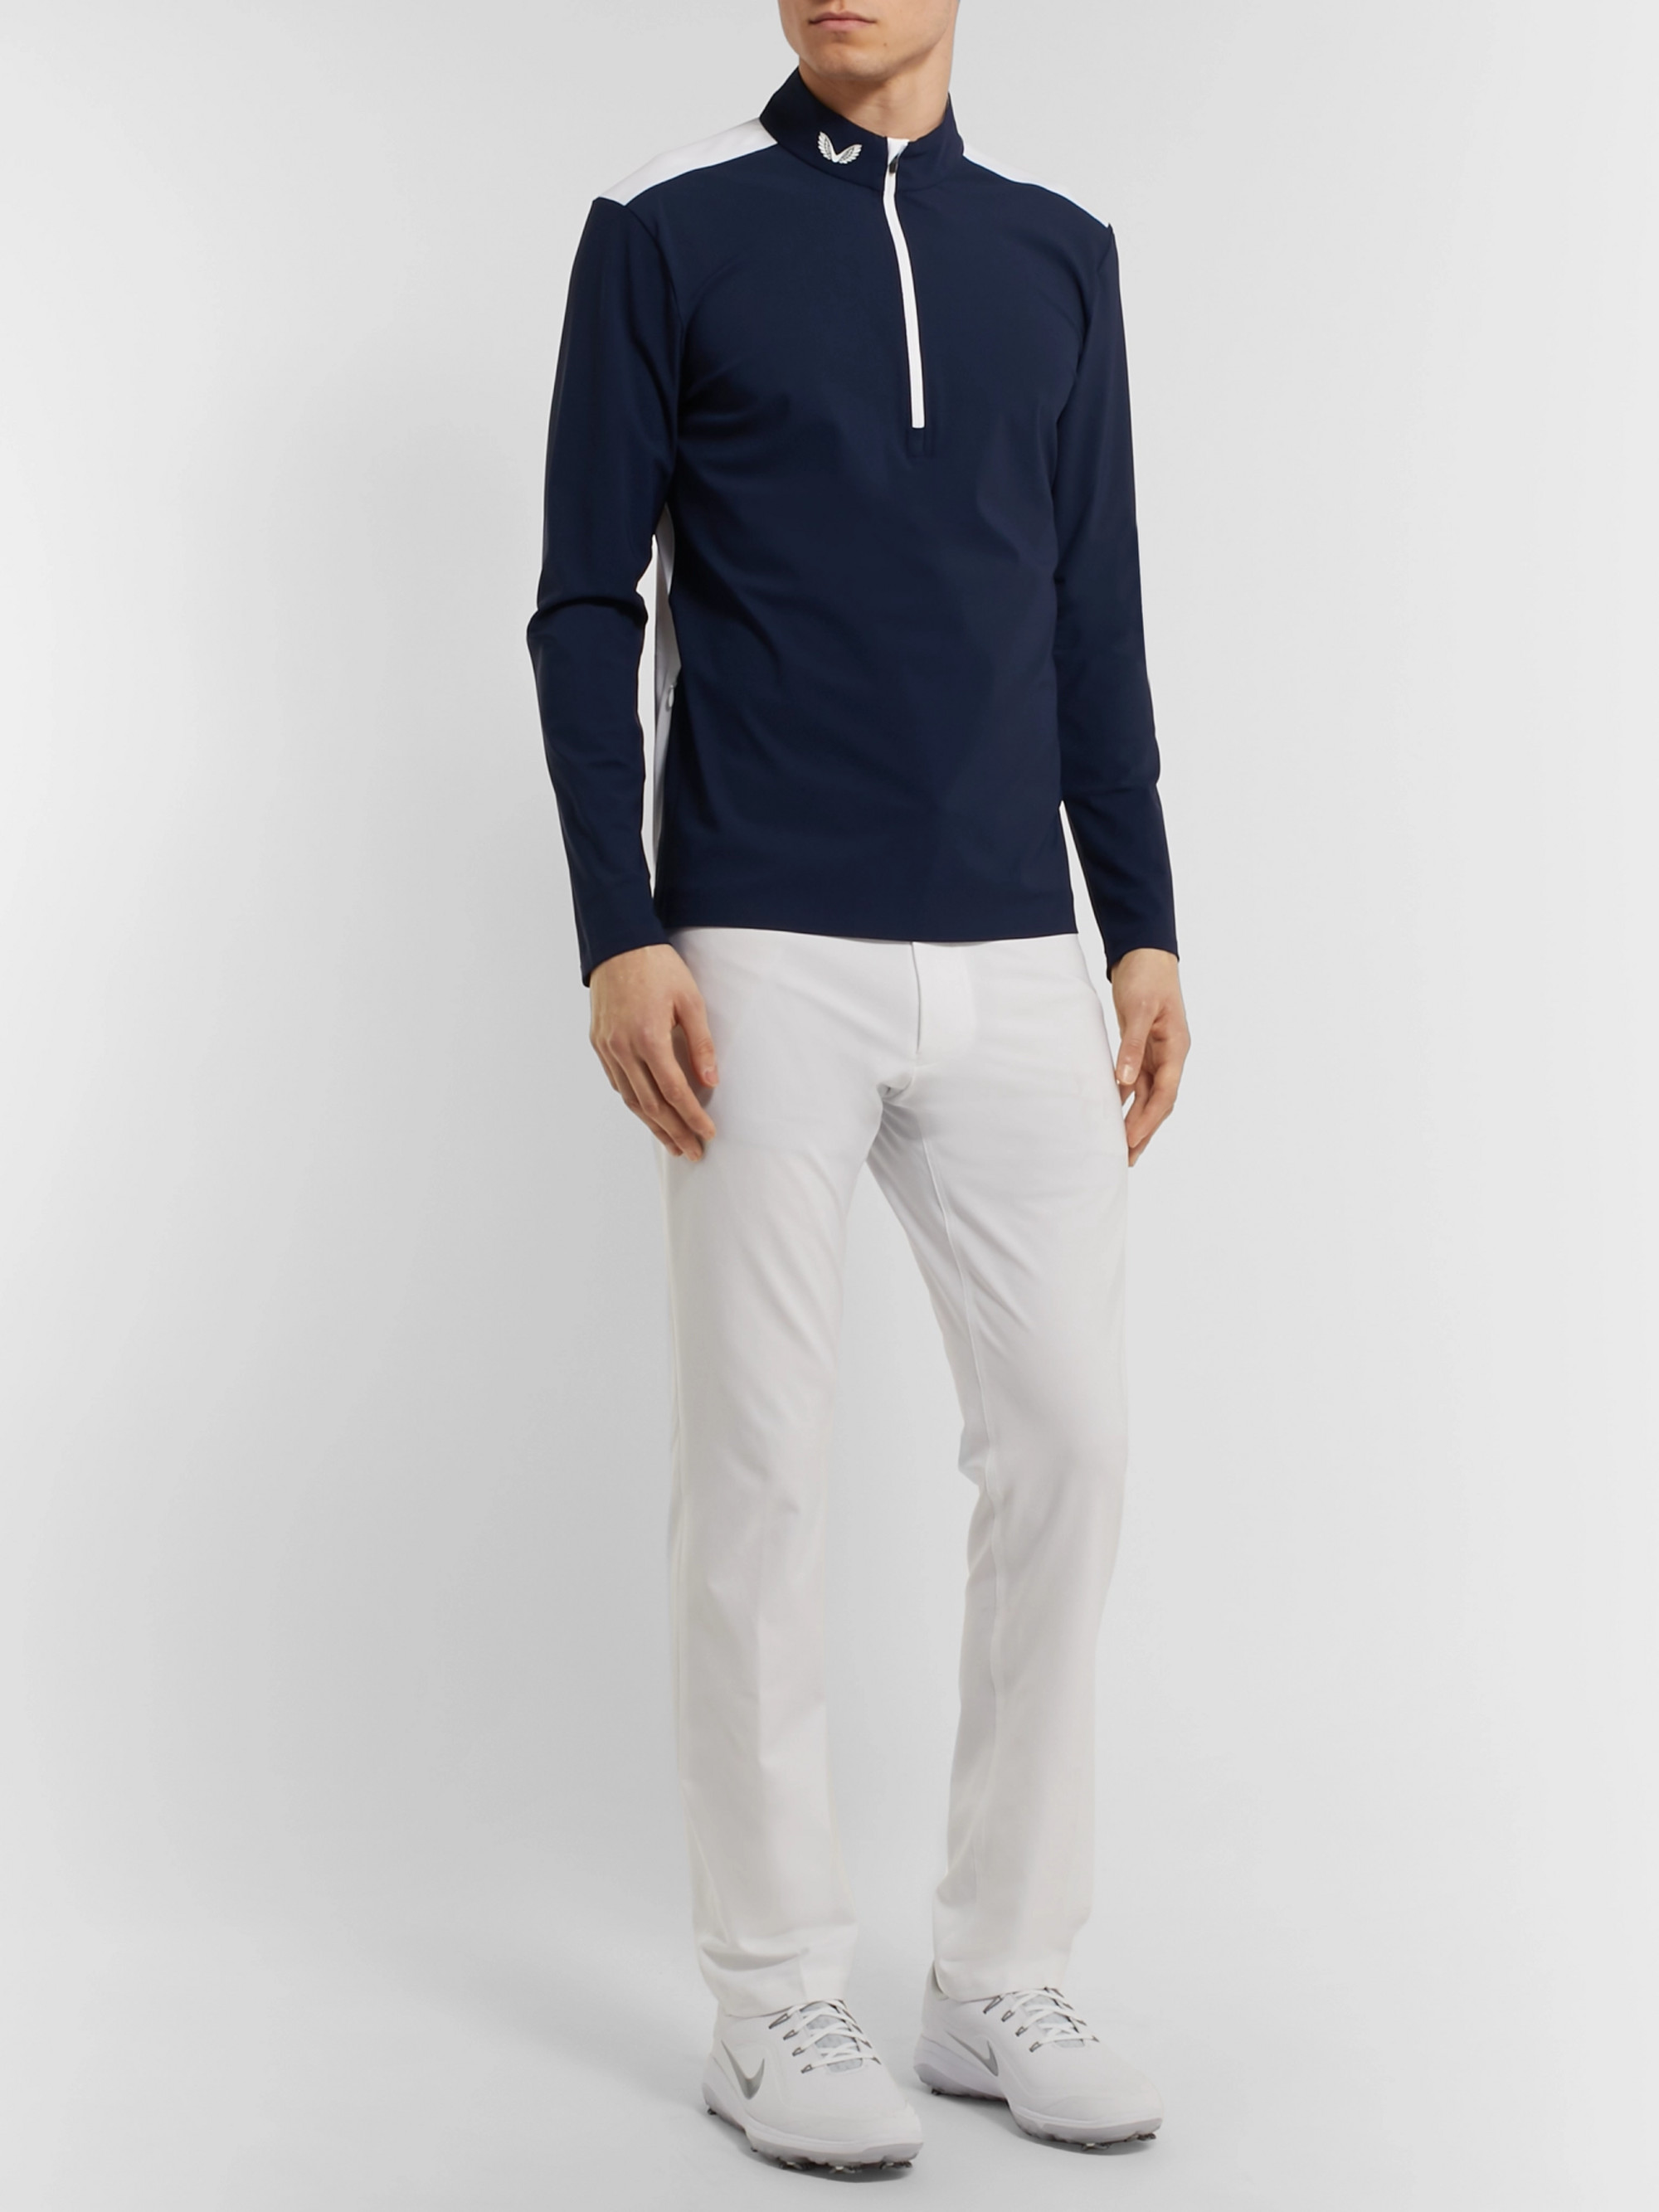 CASTORE Slim-Fit Colour-Block Stretch-Jersey Half-Zip Golf Top